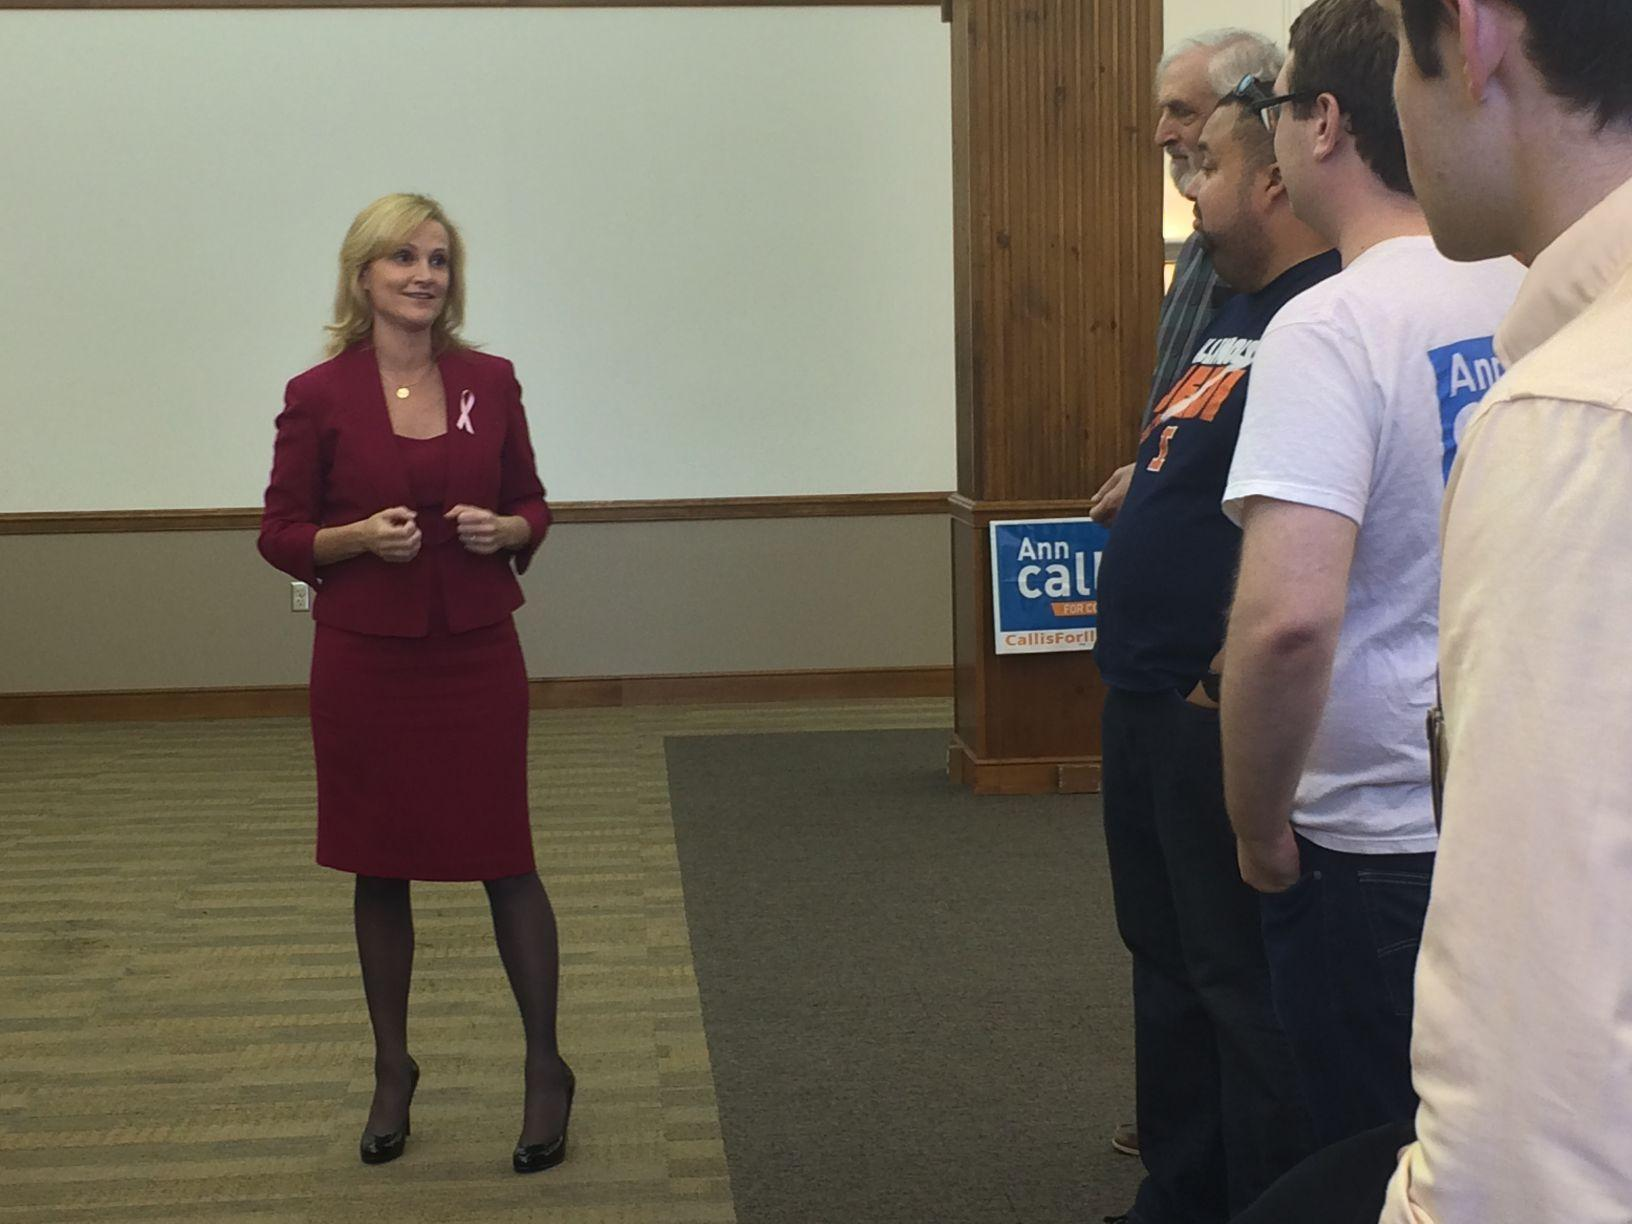 Ann Callis, Democratic congressional candiate for the 13th District, spoke to student supporters at a rally in the Illini Union Sunday on how to encourage people to vote in the upcoming Nov. 4 Midterm elections.